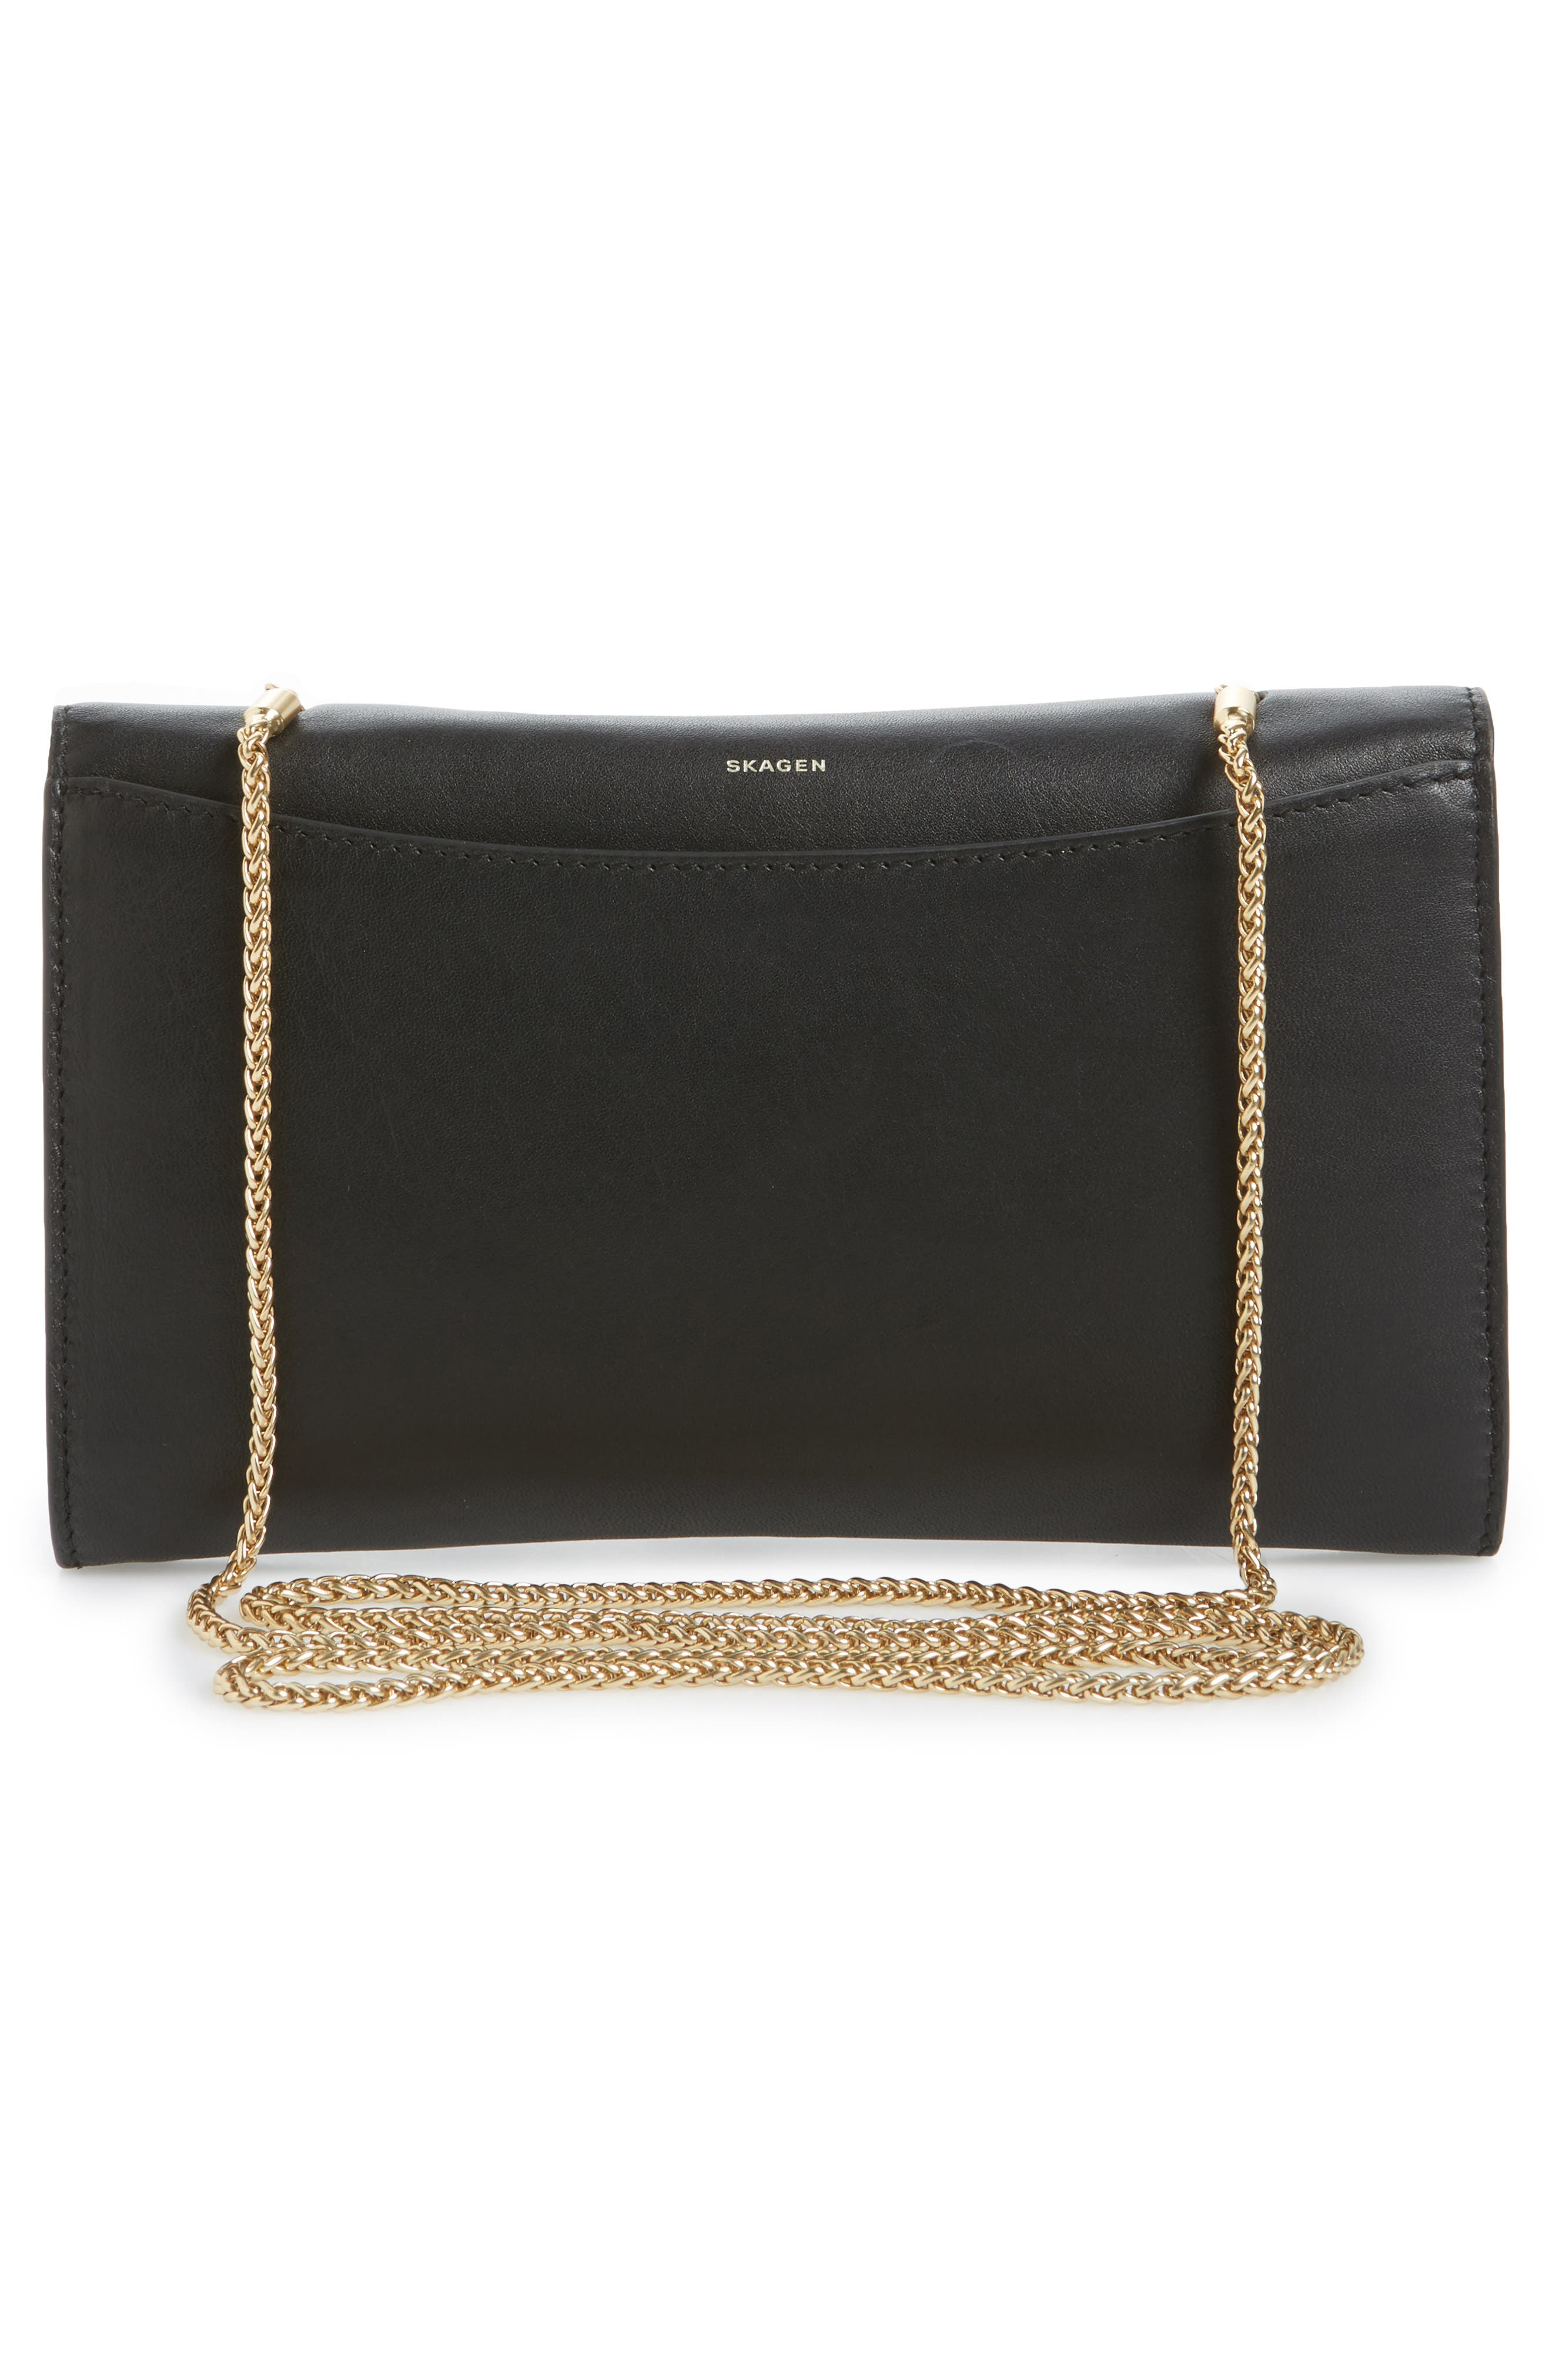 Eryka Leather Envelope Clutch with Detachable Chain,                             Alternate thumbnail 3, color,                             001